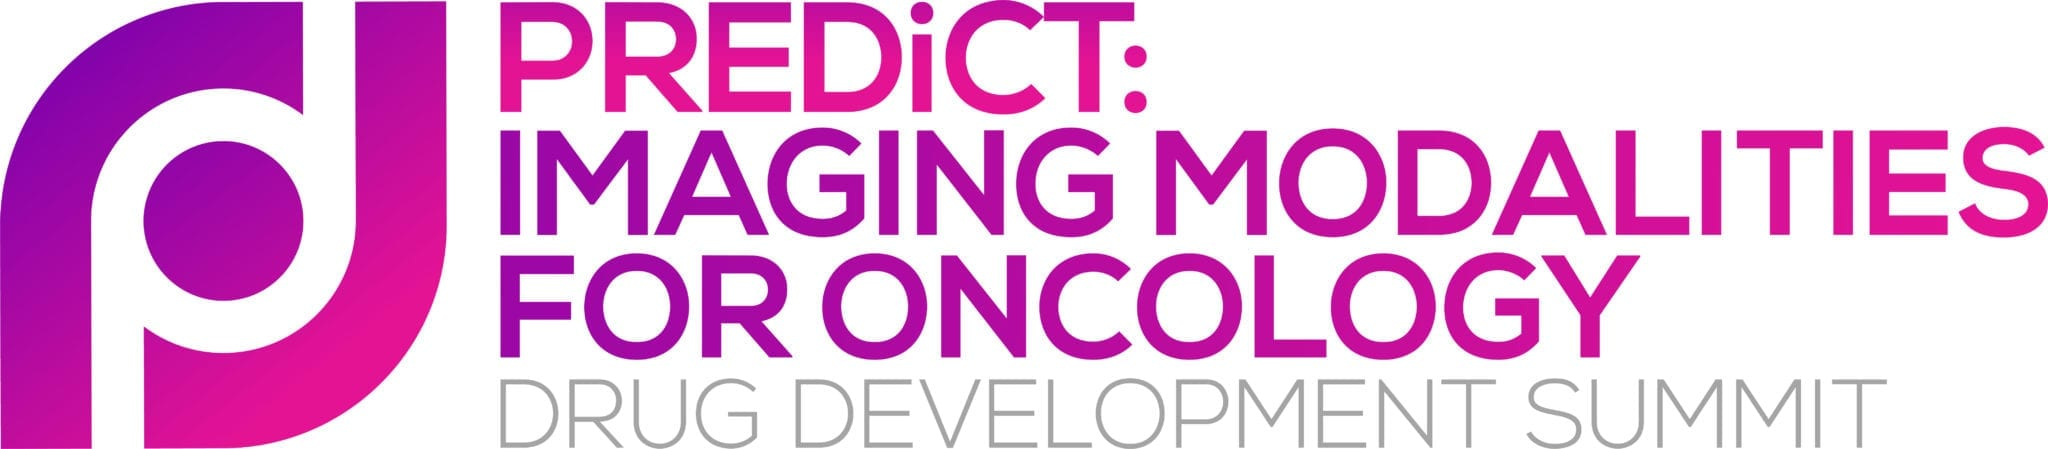 -PREDiCT-Imaging-Modalities-for-Oncology-Drug-Development-Summit-logo-FINAL-003-scaled